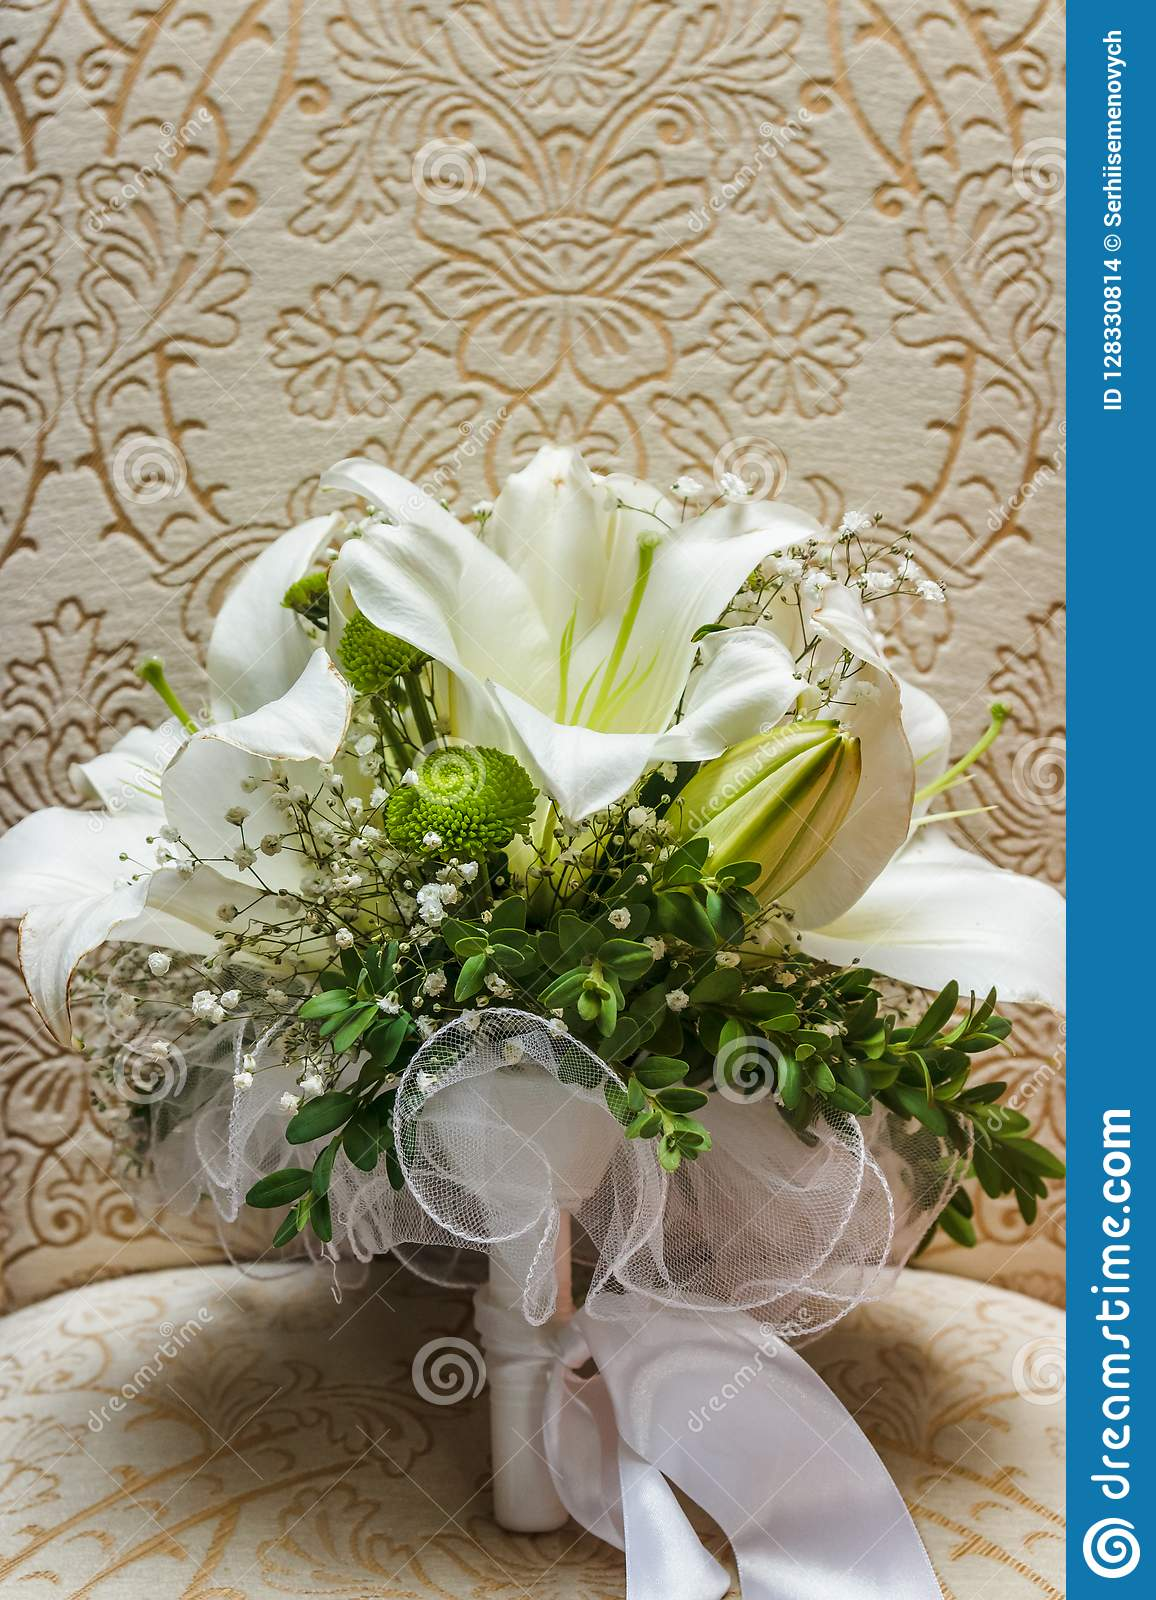 Wedding white bride shoes with a bouquet of white roses and other flowers, wedding rings on a stool